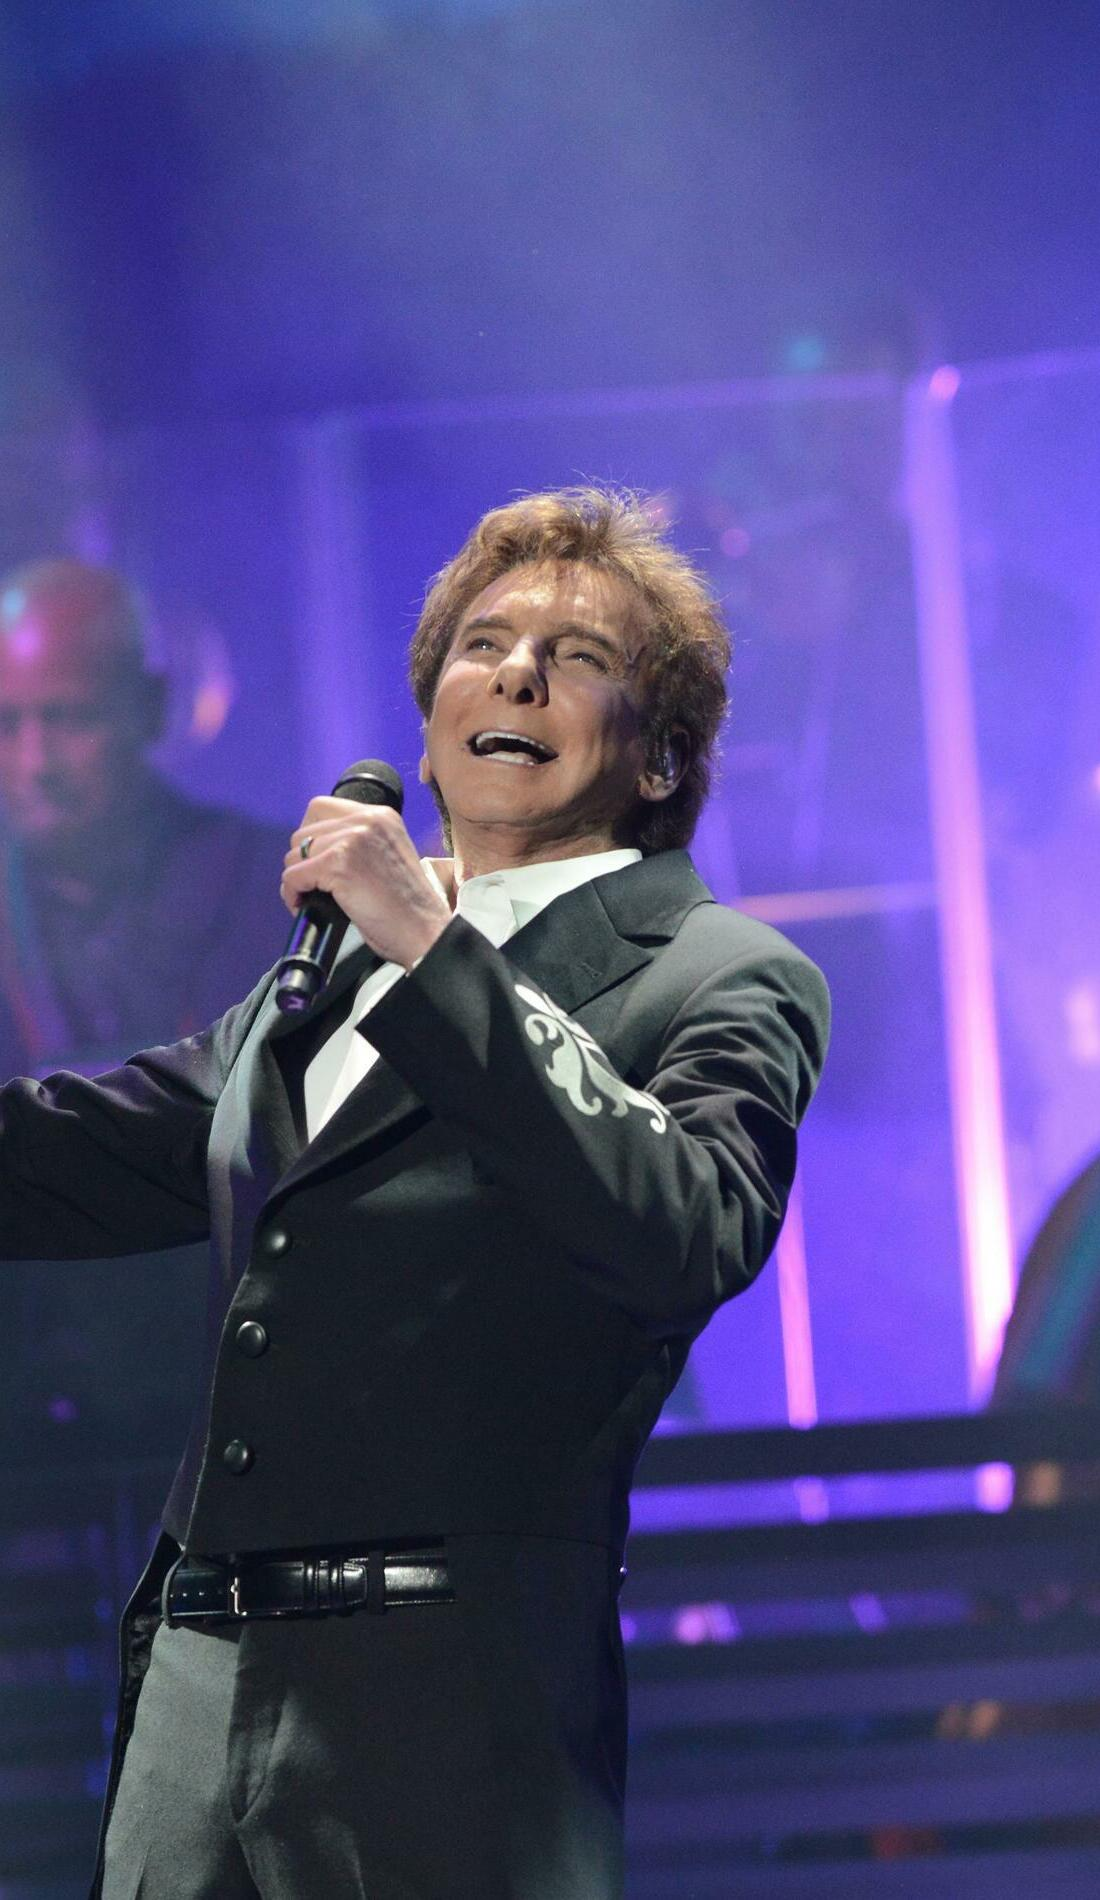 A Barry Manilow live event